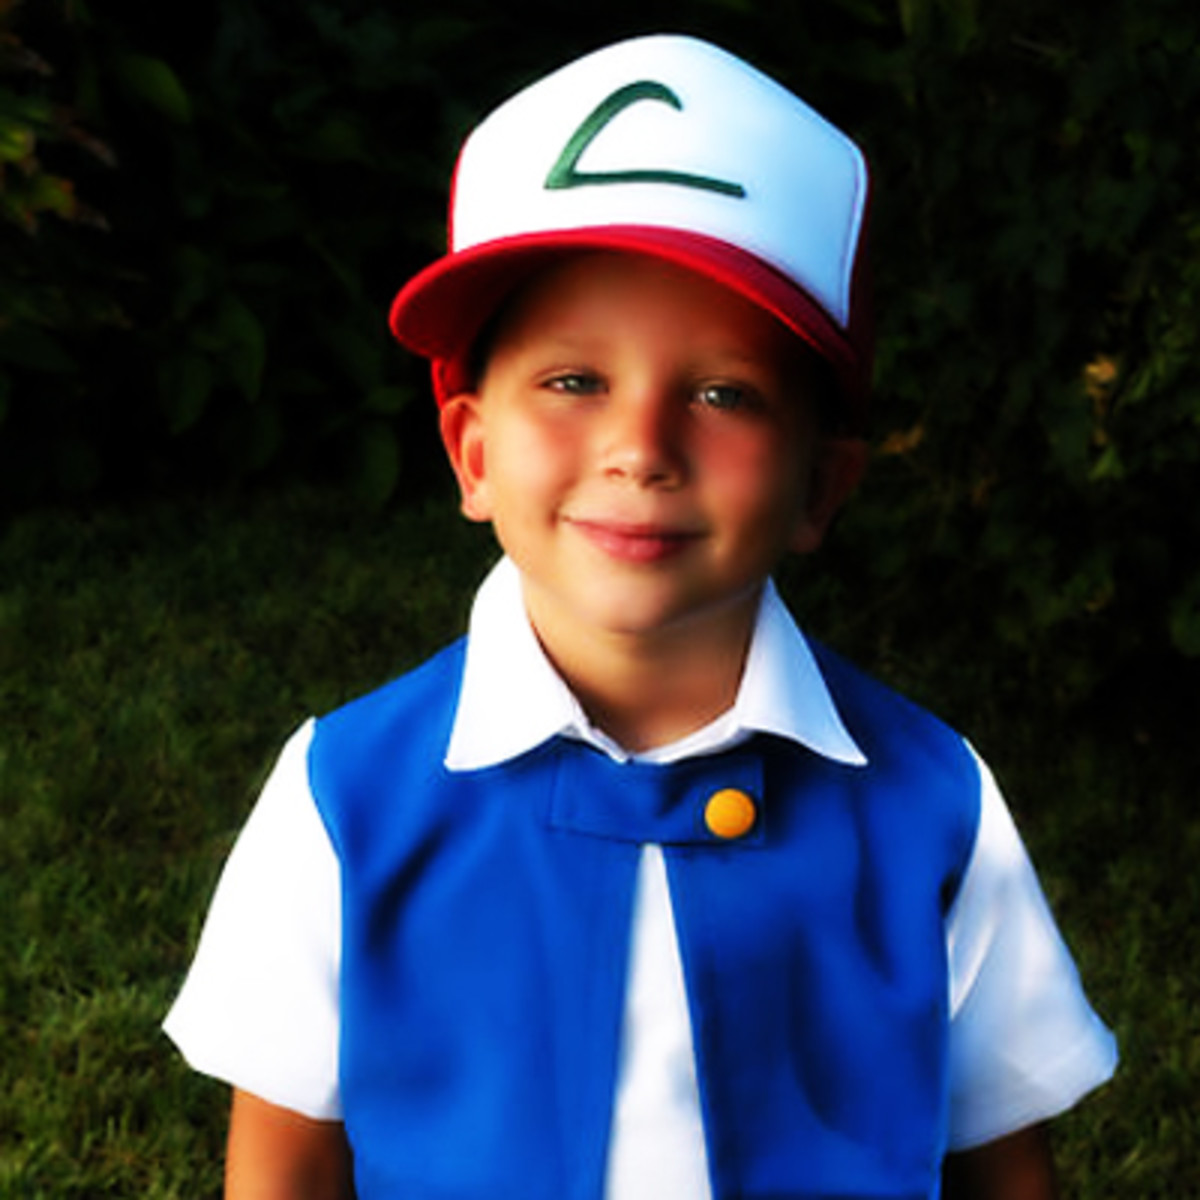 An Ash Ketchum costume involves some simple, colorful clothes and a hat. You might accessorize it with a Poké Ball.